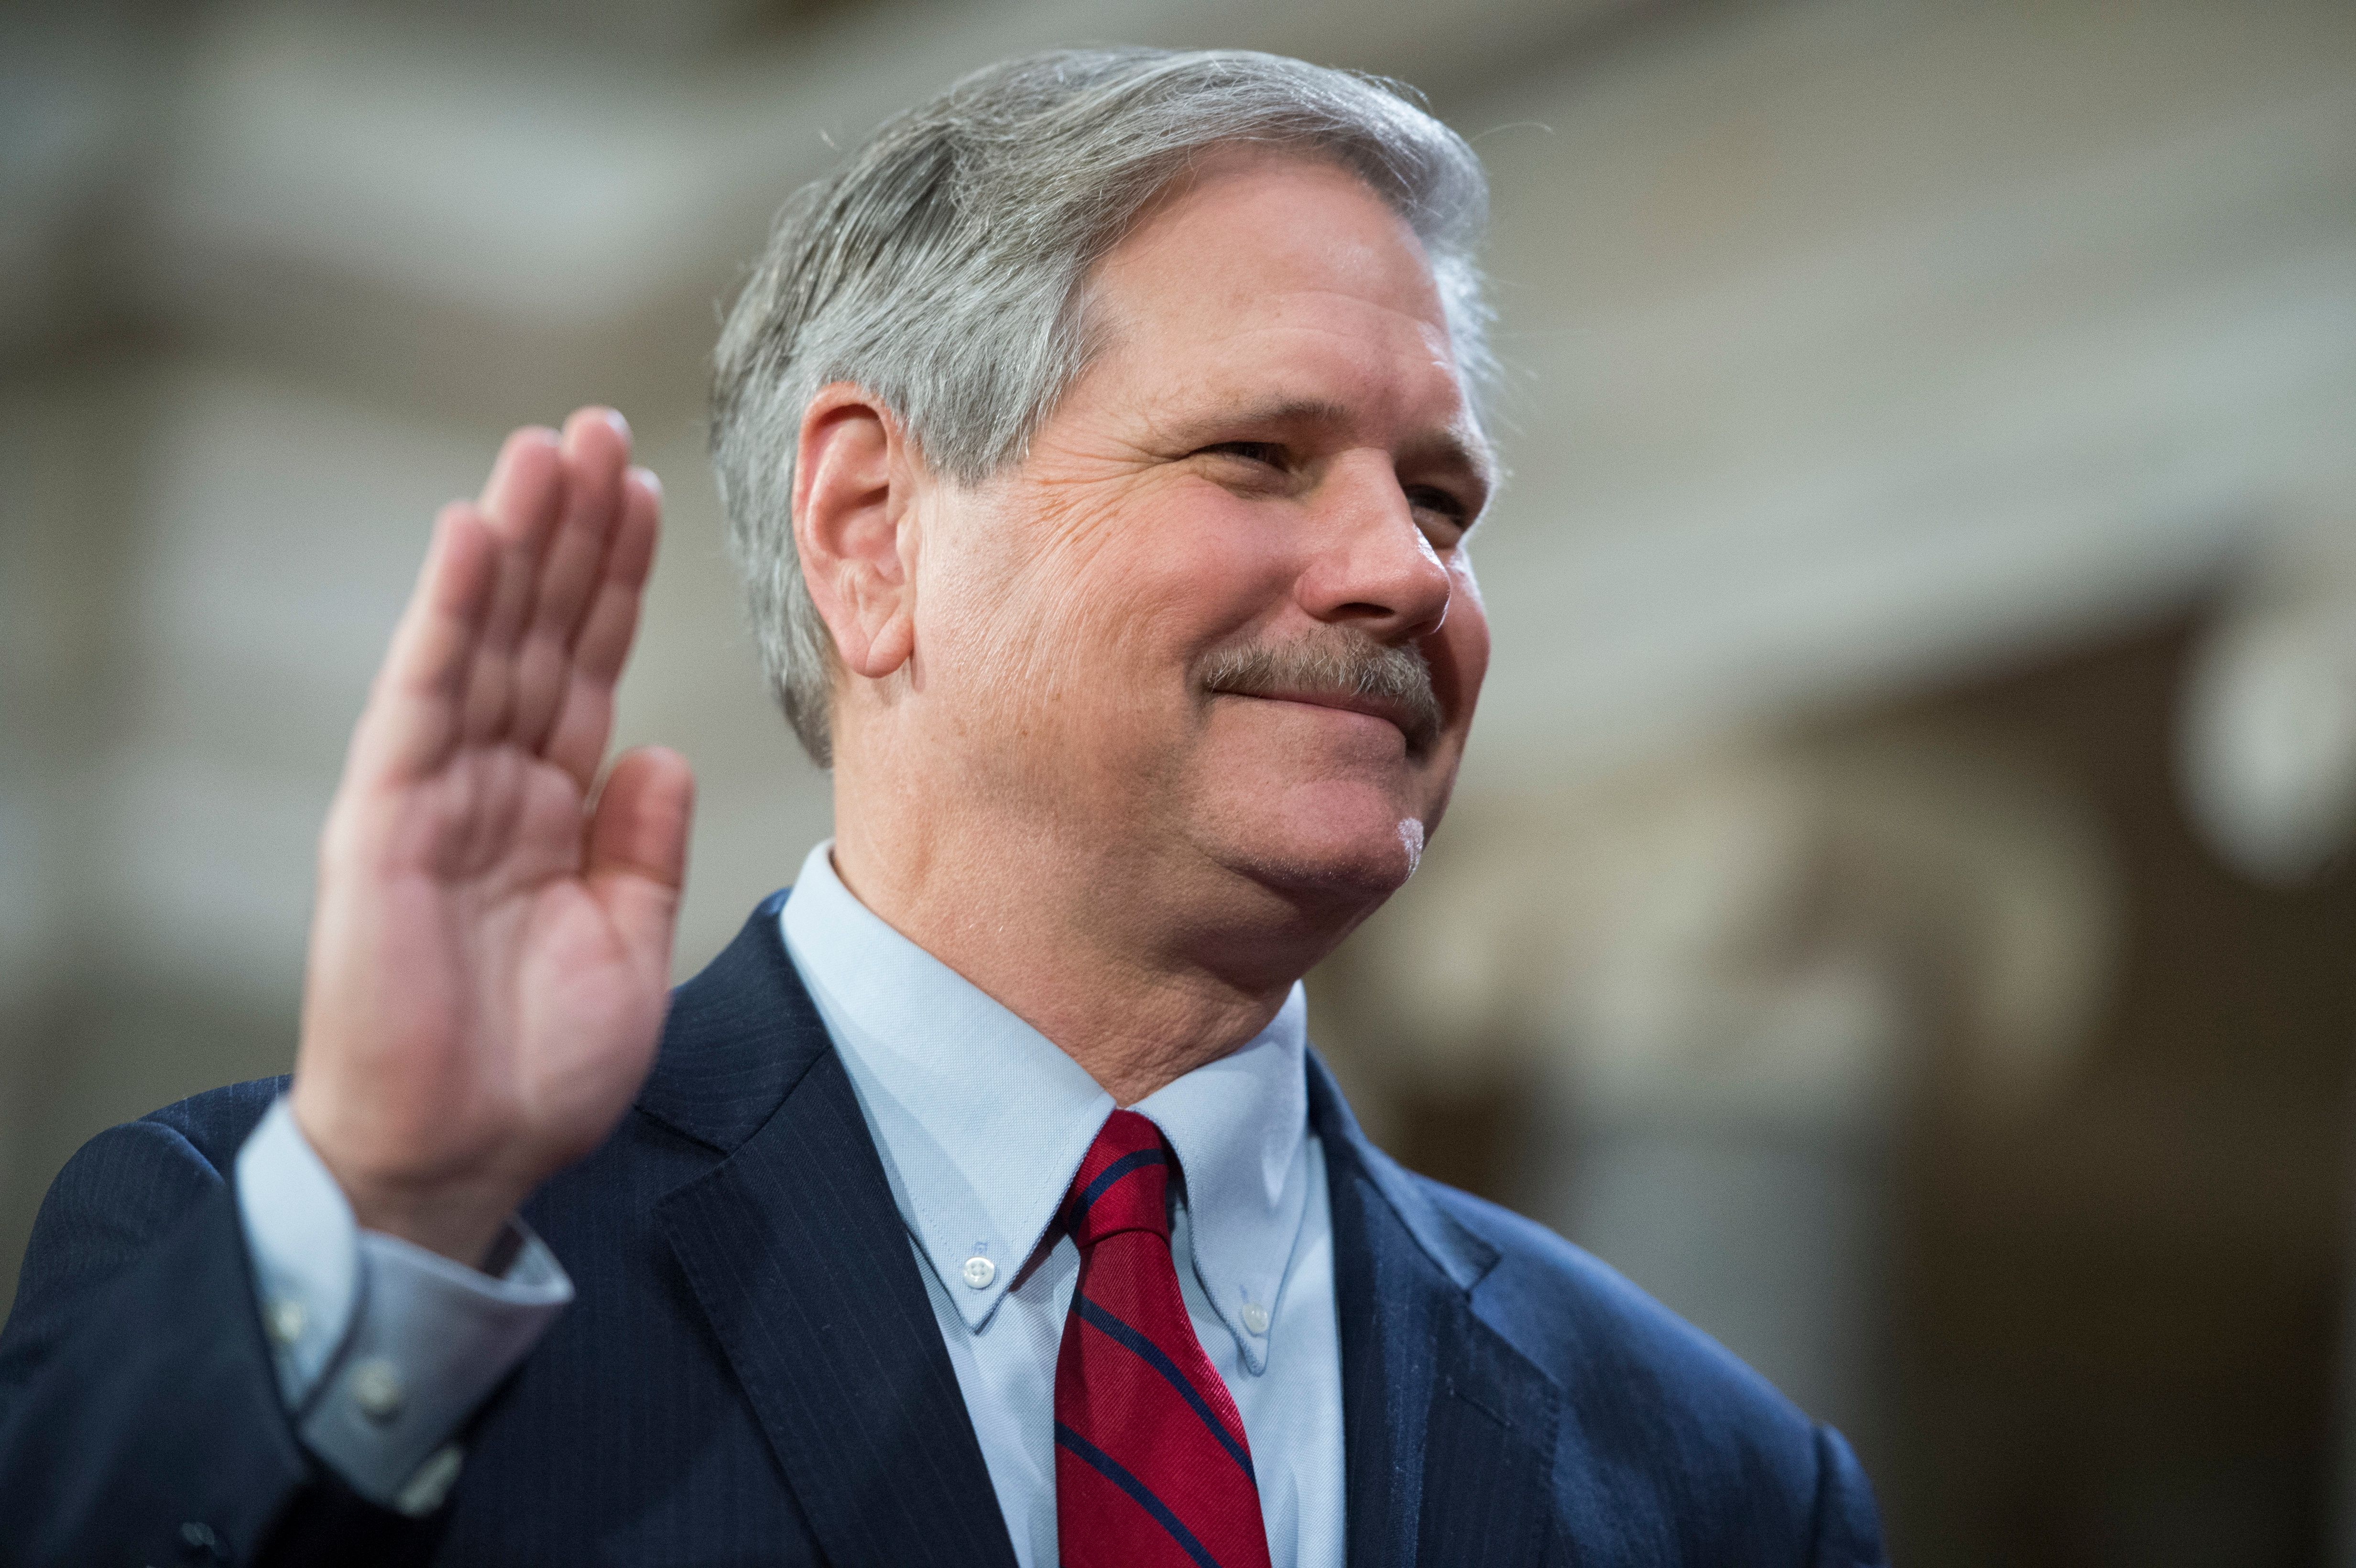 UNITED STATES - JANUARY 03: Sen. John Hoeven, R-N.D., is administered an oath by Vice President Joe Biden during a swearing-in ceremony in the Capitol's Old Senate Chamber, January 03, 2016. (Photo By Tom Williams/CQ Roll Call)